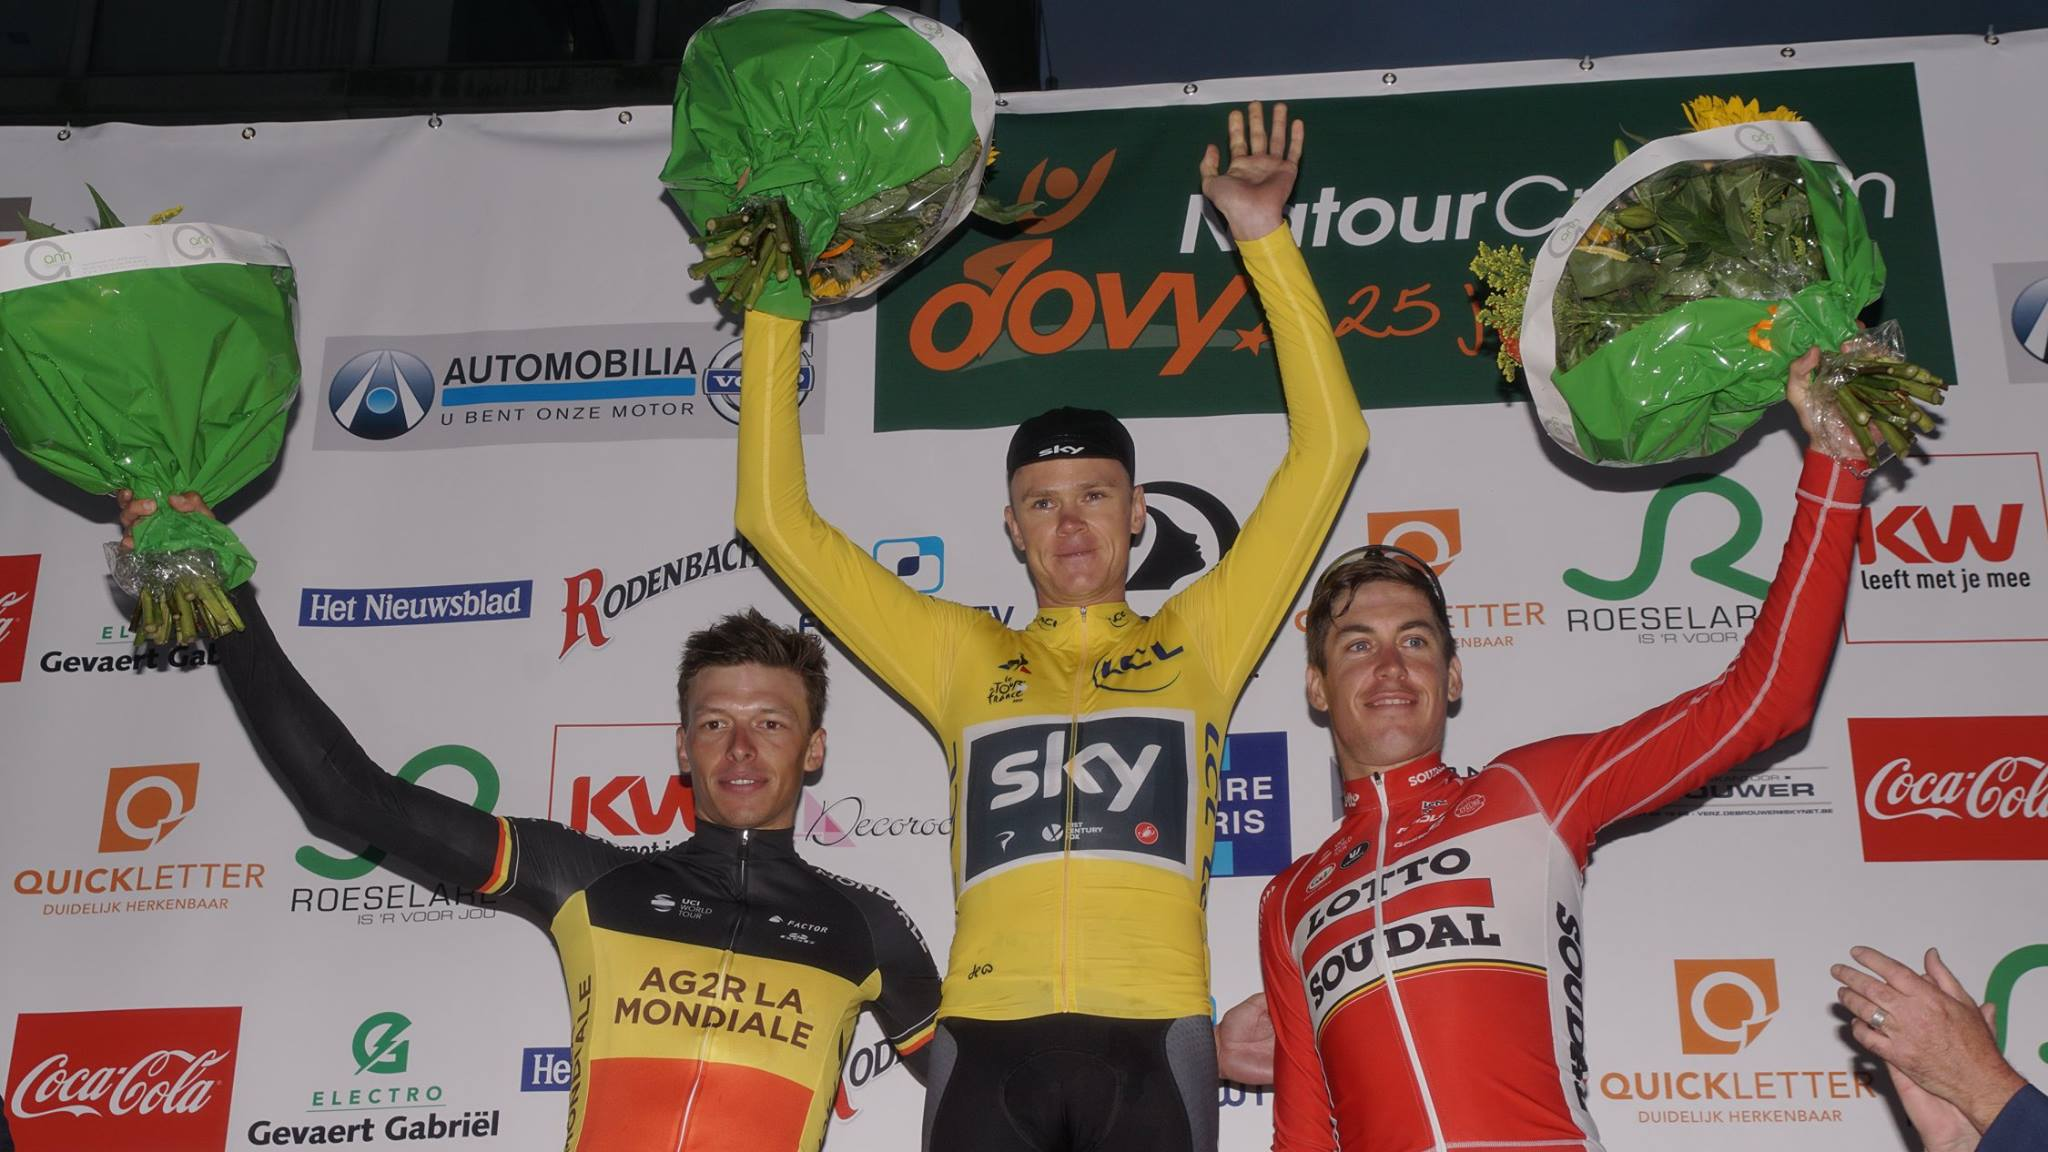 Chris Froome wint 8e na-Tourcriterium Roeselare in gele trui